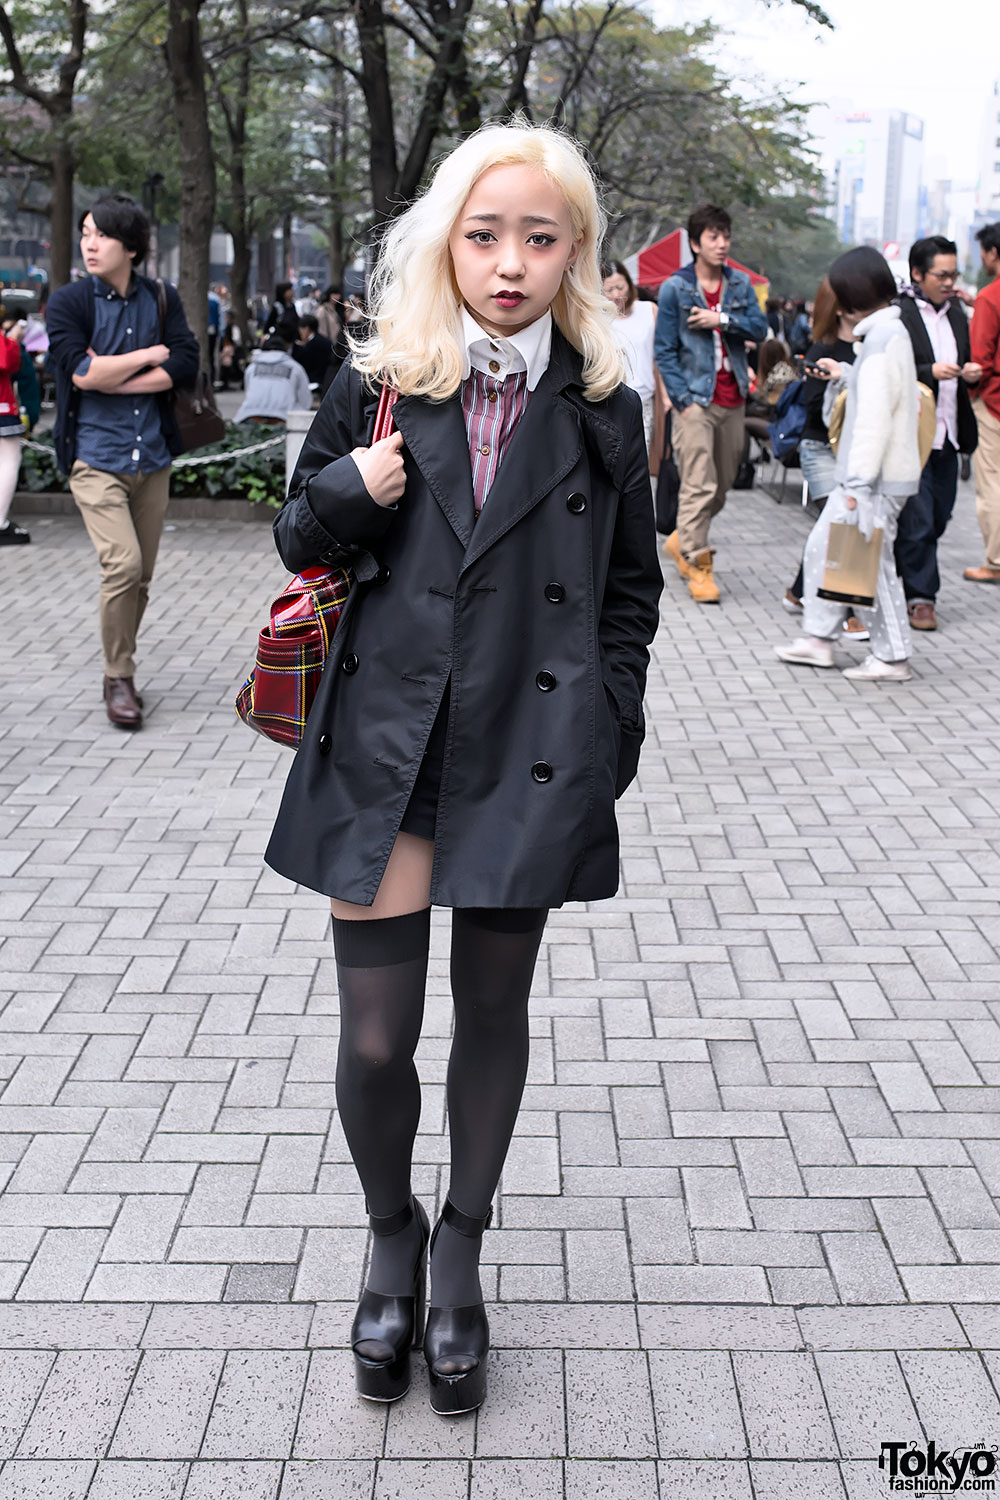 1000 Images About Japan Street Fashion On Pinterest Tokyo Street Style Harajuku And Tokyo